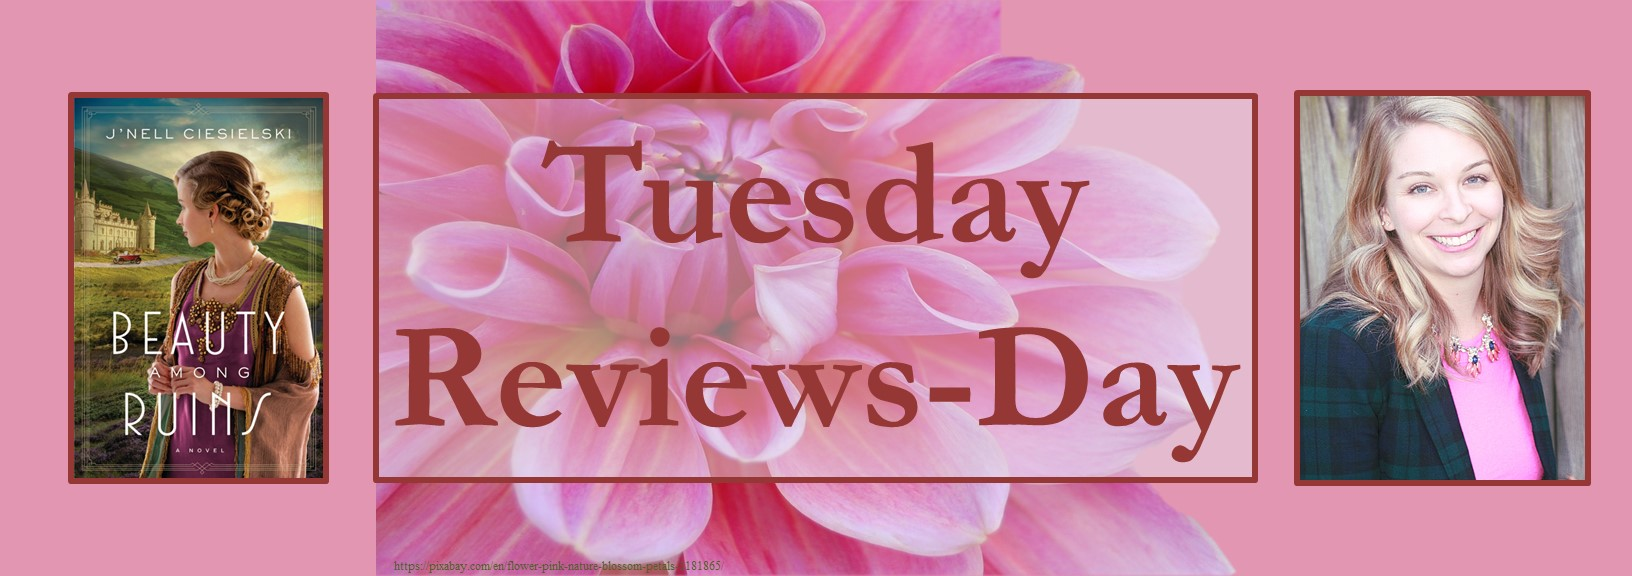 020221 - beauty among the runis - tuesday reviews day banner